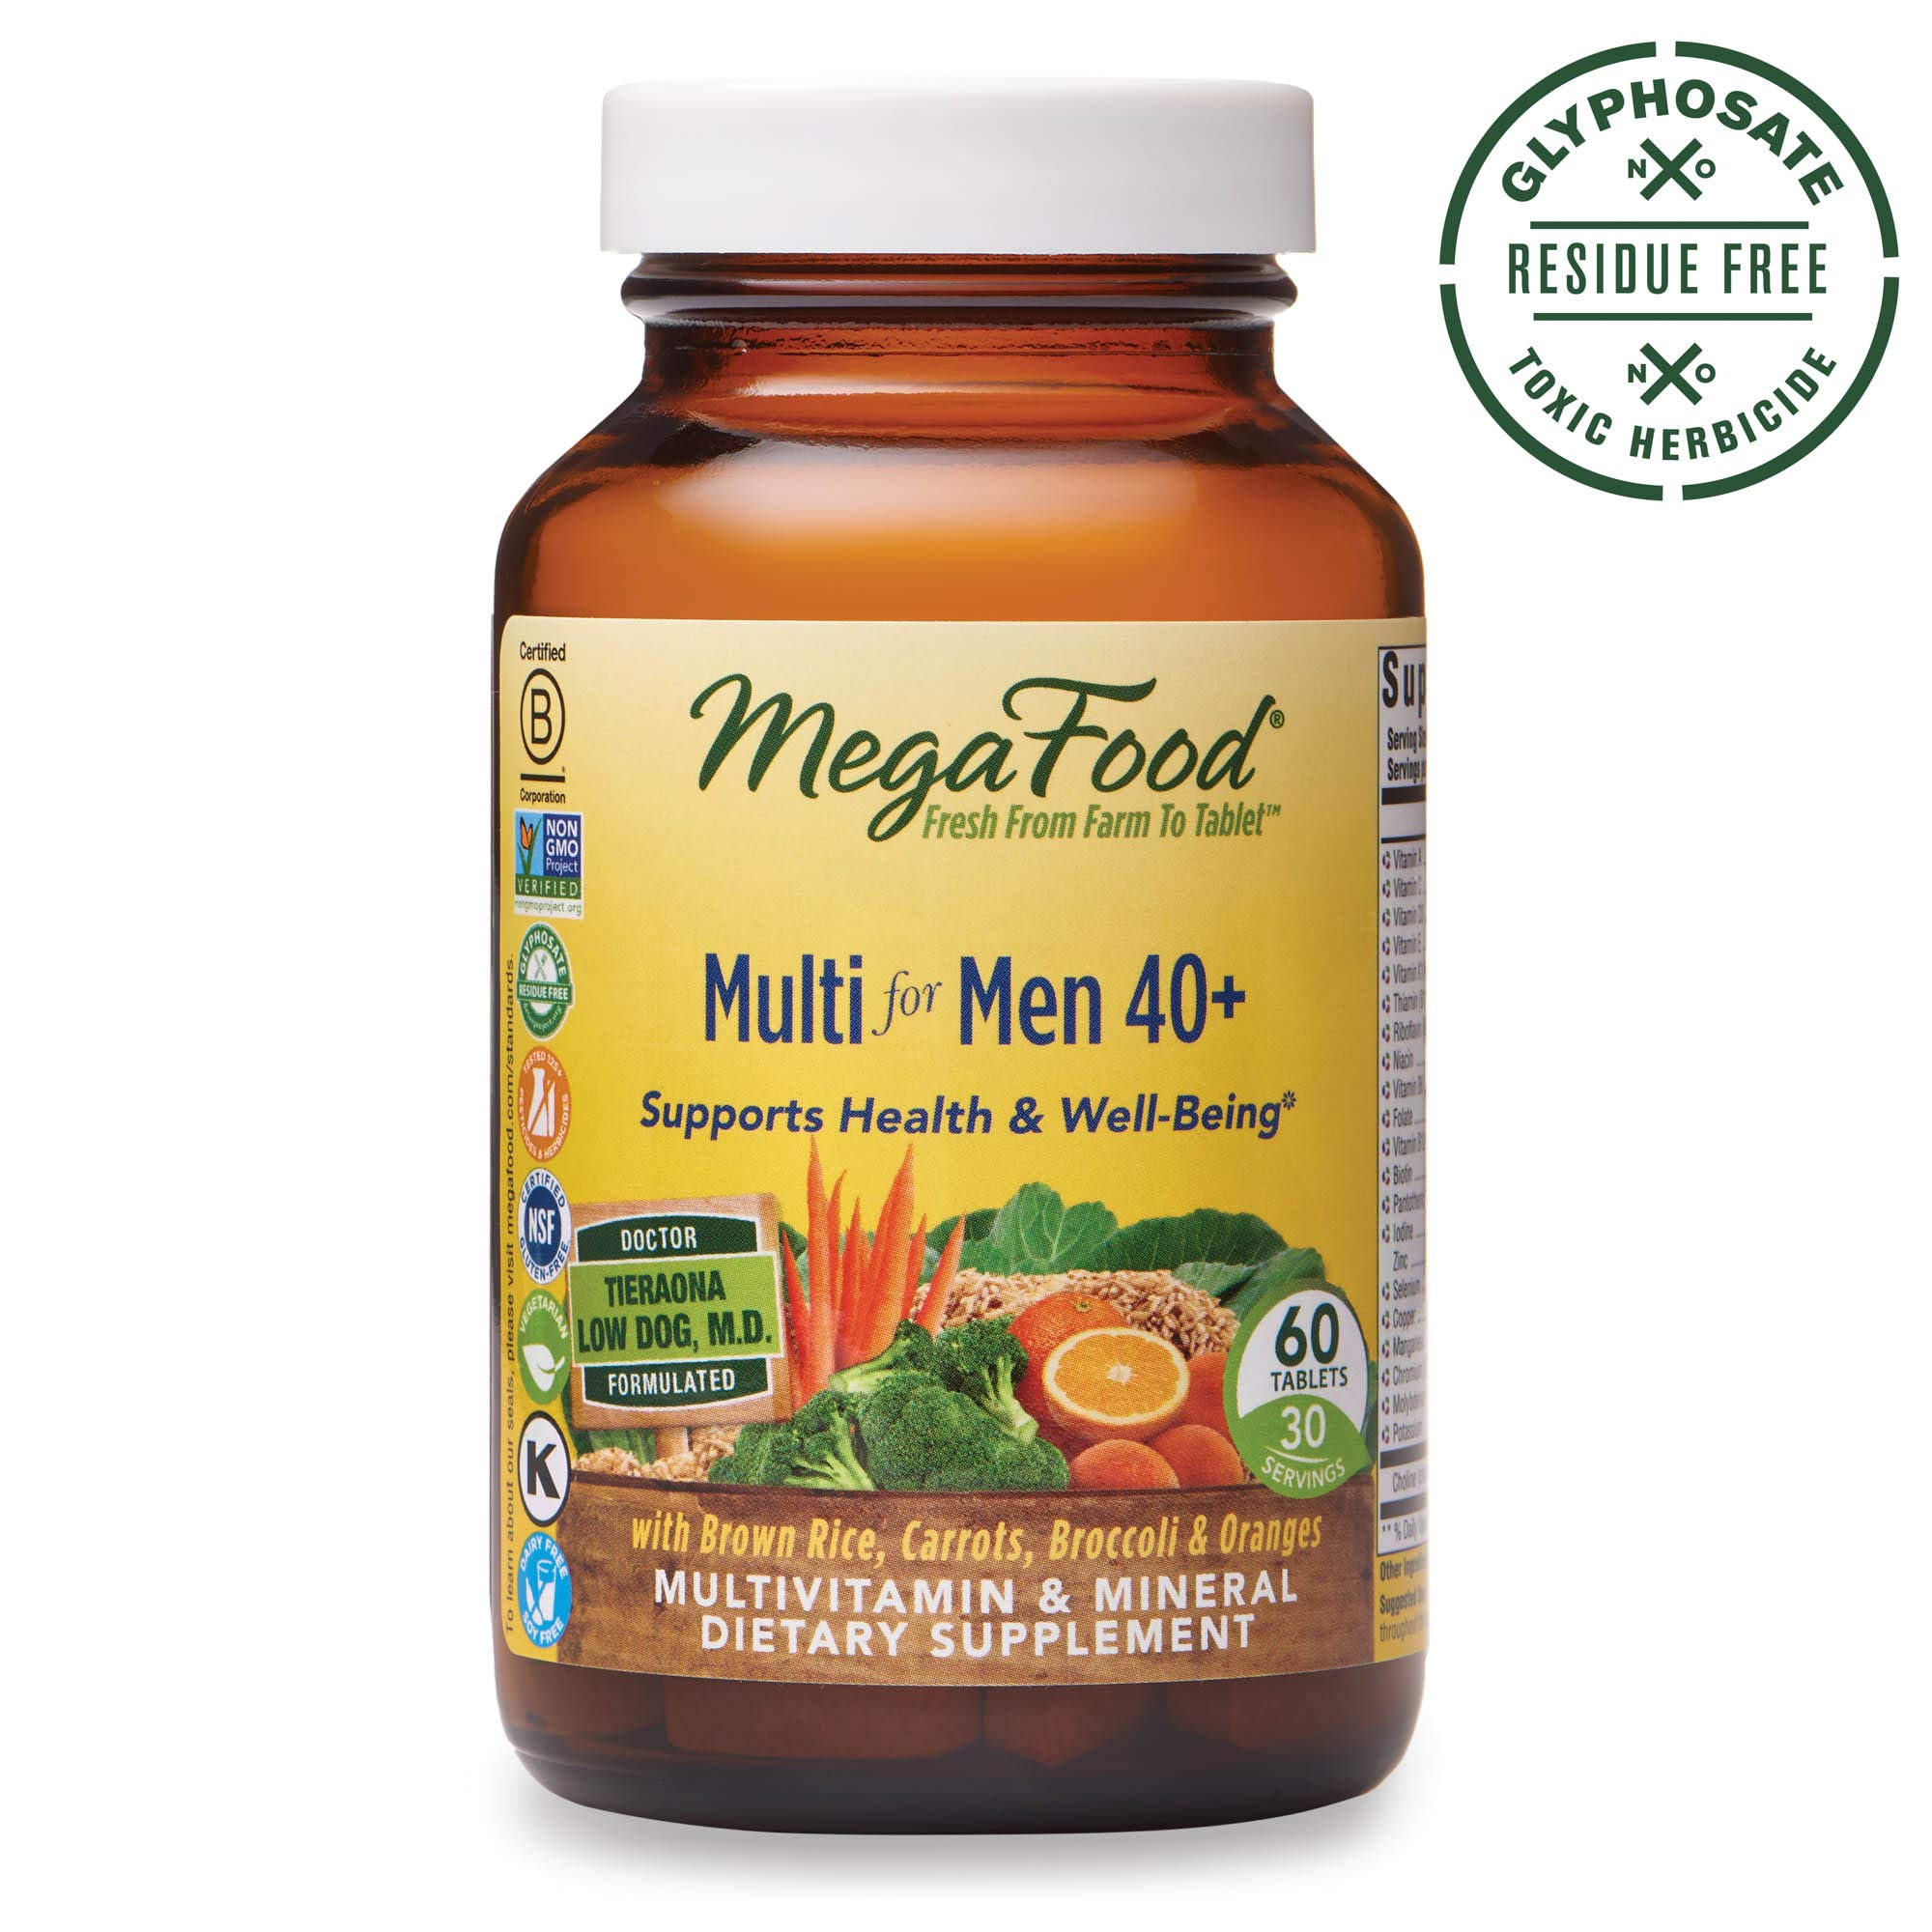 MegaFood, Multi for Men 40+, Supports Optimal Health and Wellbeing, Multivitamin and Mineral Supplement, Gluten Free, Vegetarian, 60 Tablets (30 Servings) by MegaFood